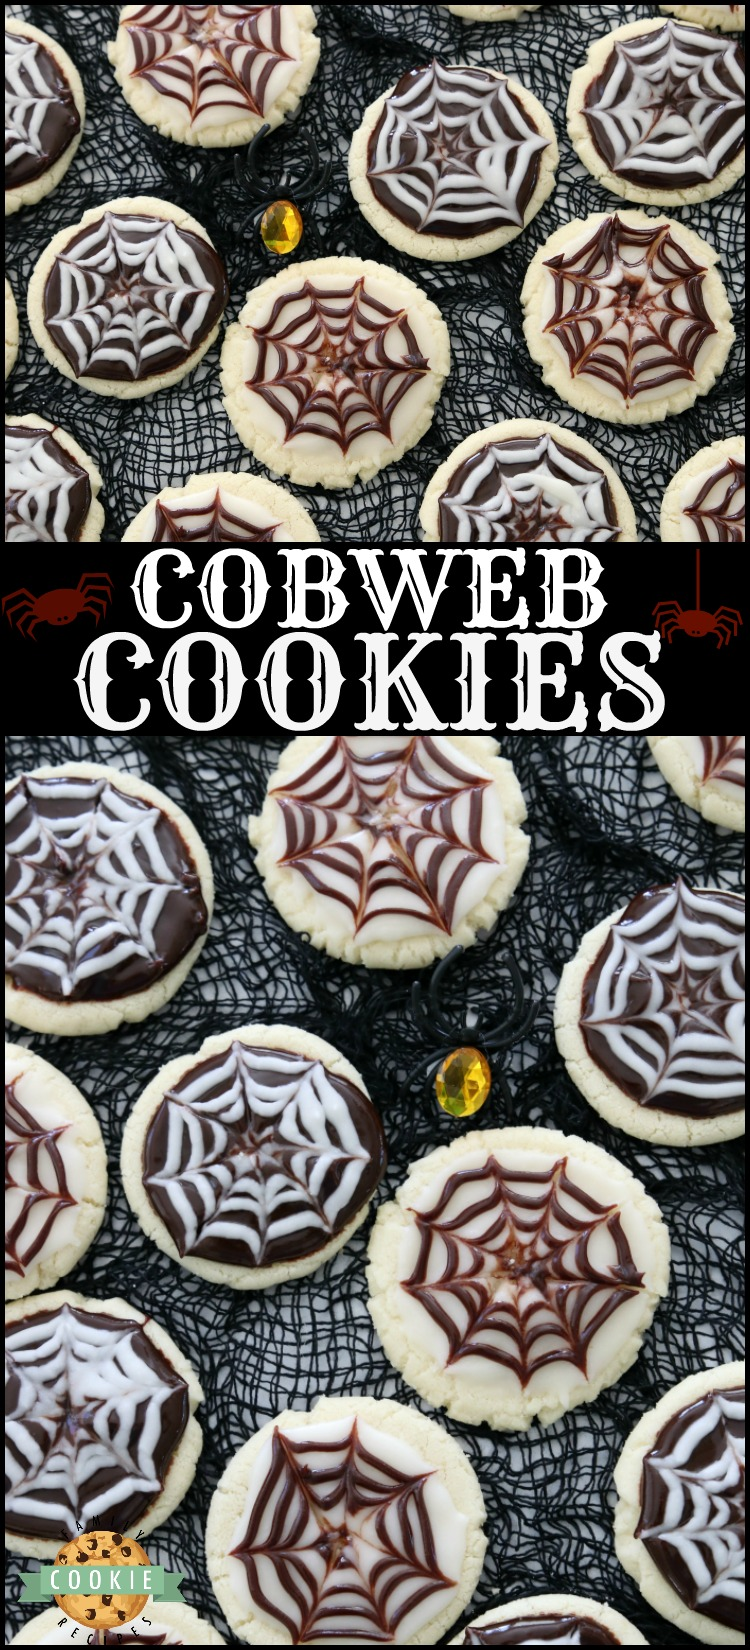 Halloween Cobweb Cookies are spectacularly spooky and completely delicious! Sugar cookies topped with chocolate & vanilla icing- no coloring! Quick & easy spider web design made in seconds. Perfect Halloween treats! via @buttergirls